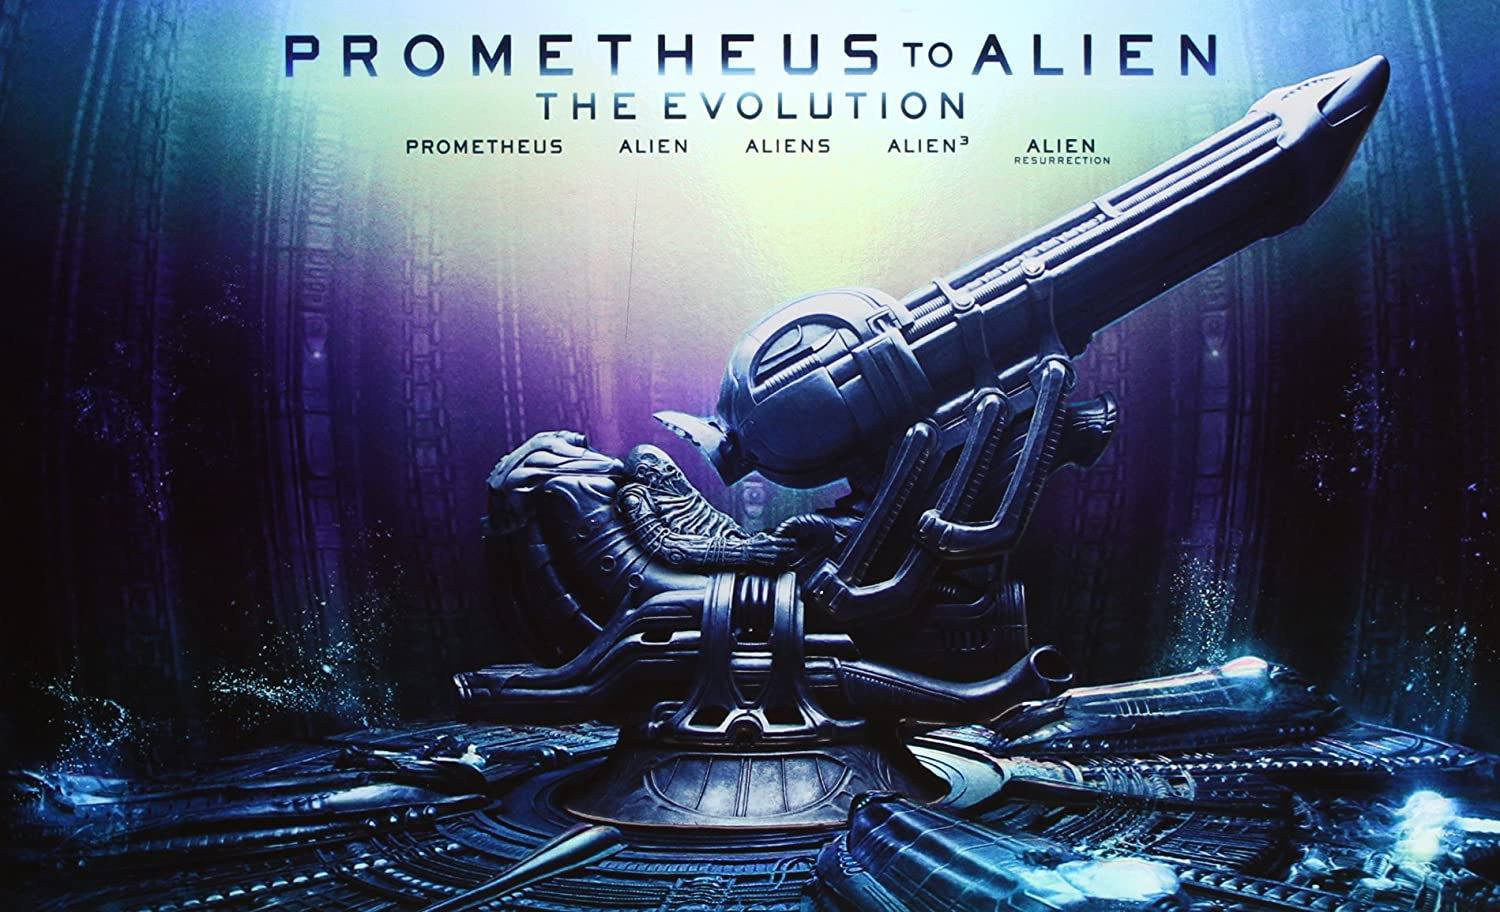 Pack Evolution: Prometheus To Alien [Blu-ray]: Amazon.es: Sigourney Weaver, Tom Skerritt, John Hurt, Veronica Cartwright, Charles Dance, Paul McGann, Winona Ryder, Dominique Pinon, Ron Perlman, Noomi Rapace, Ridley Scott, James Cameron, David